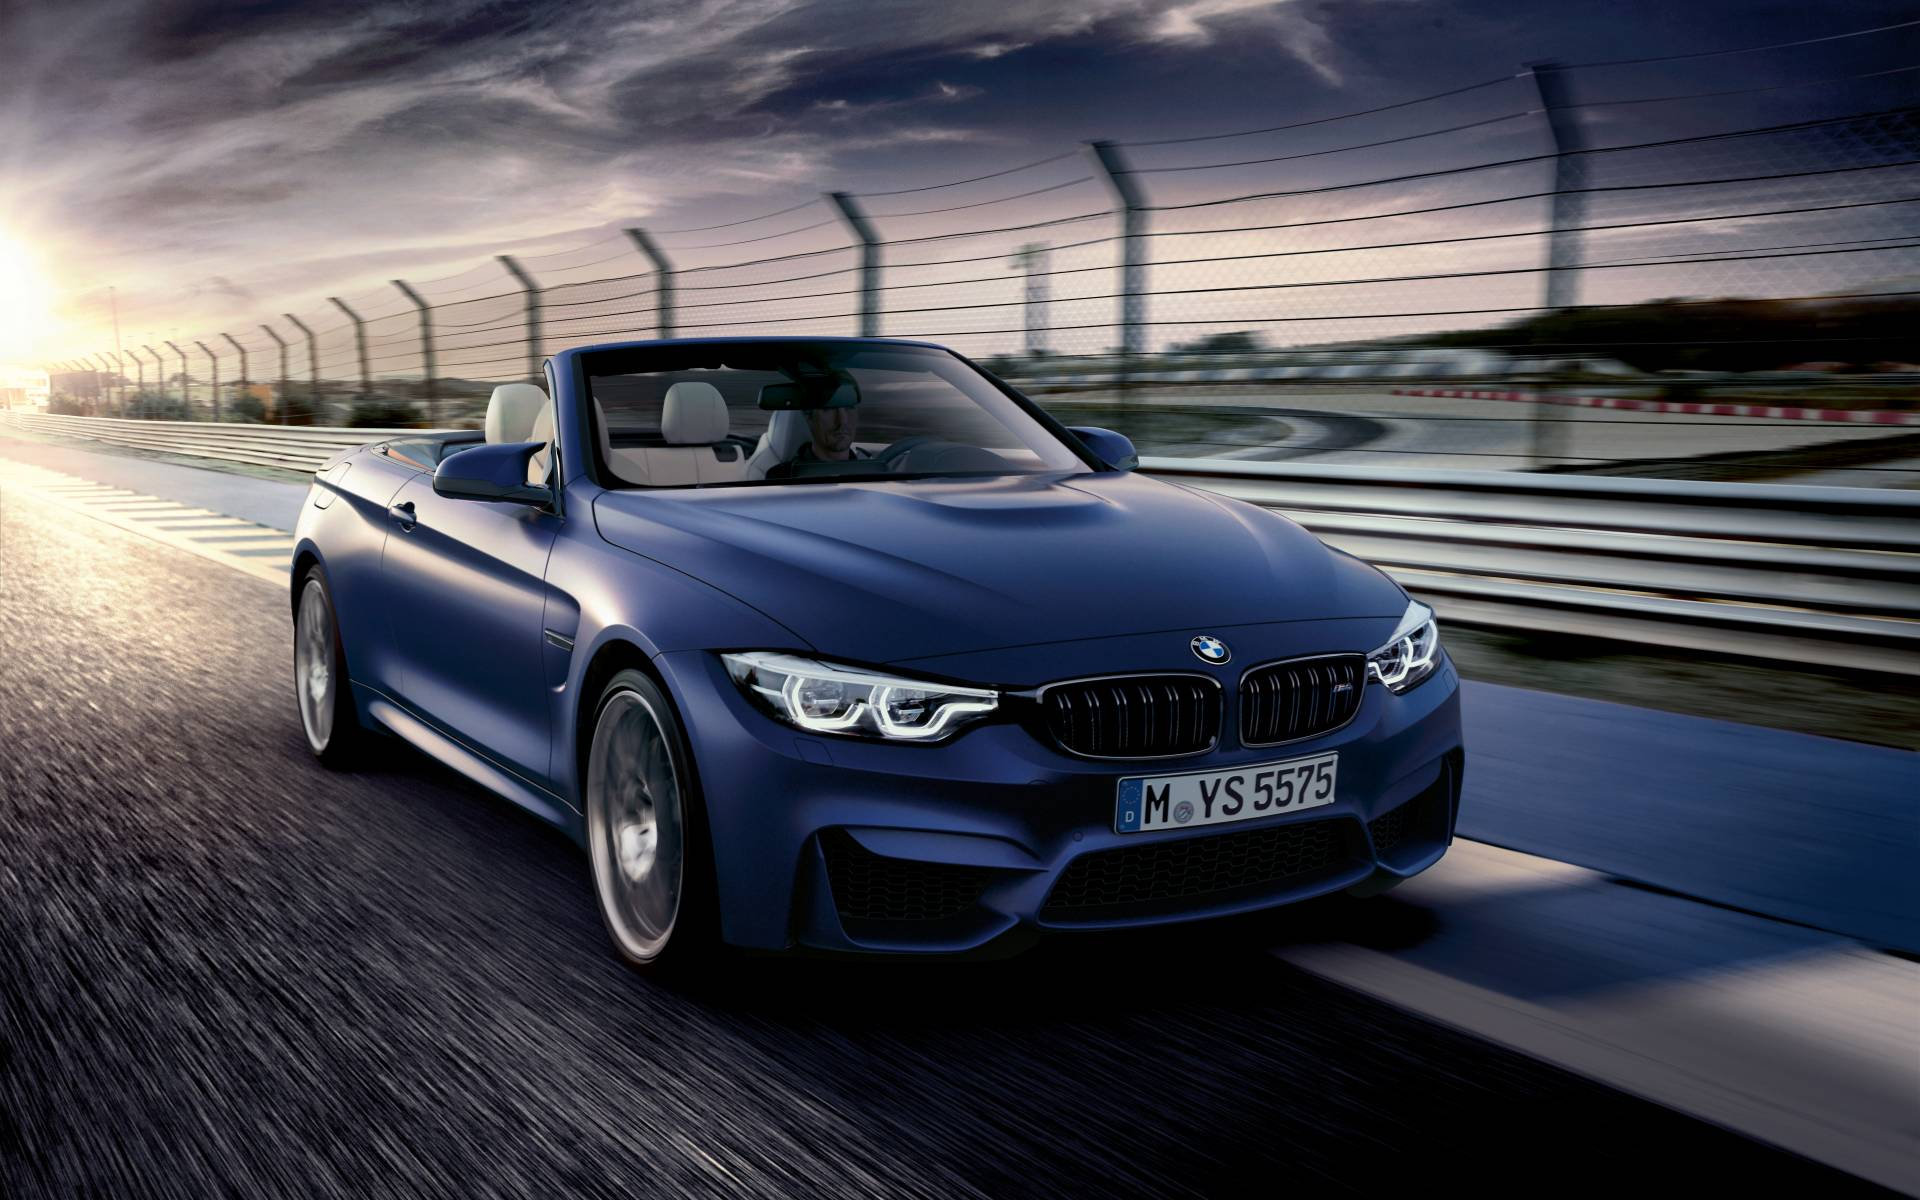 2020 Bmw 4 Series News Reviews Picture Galleries And Videos